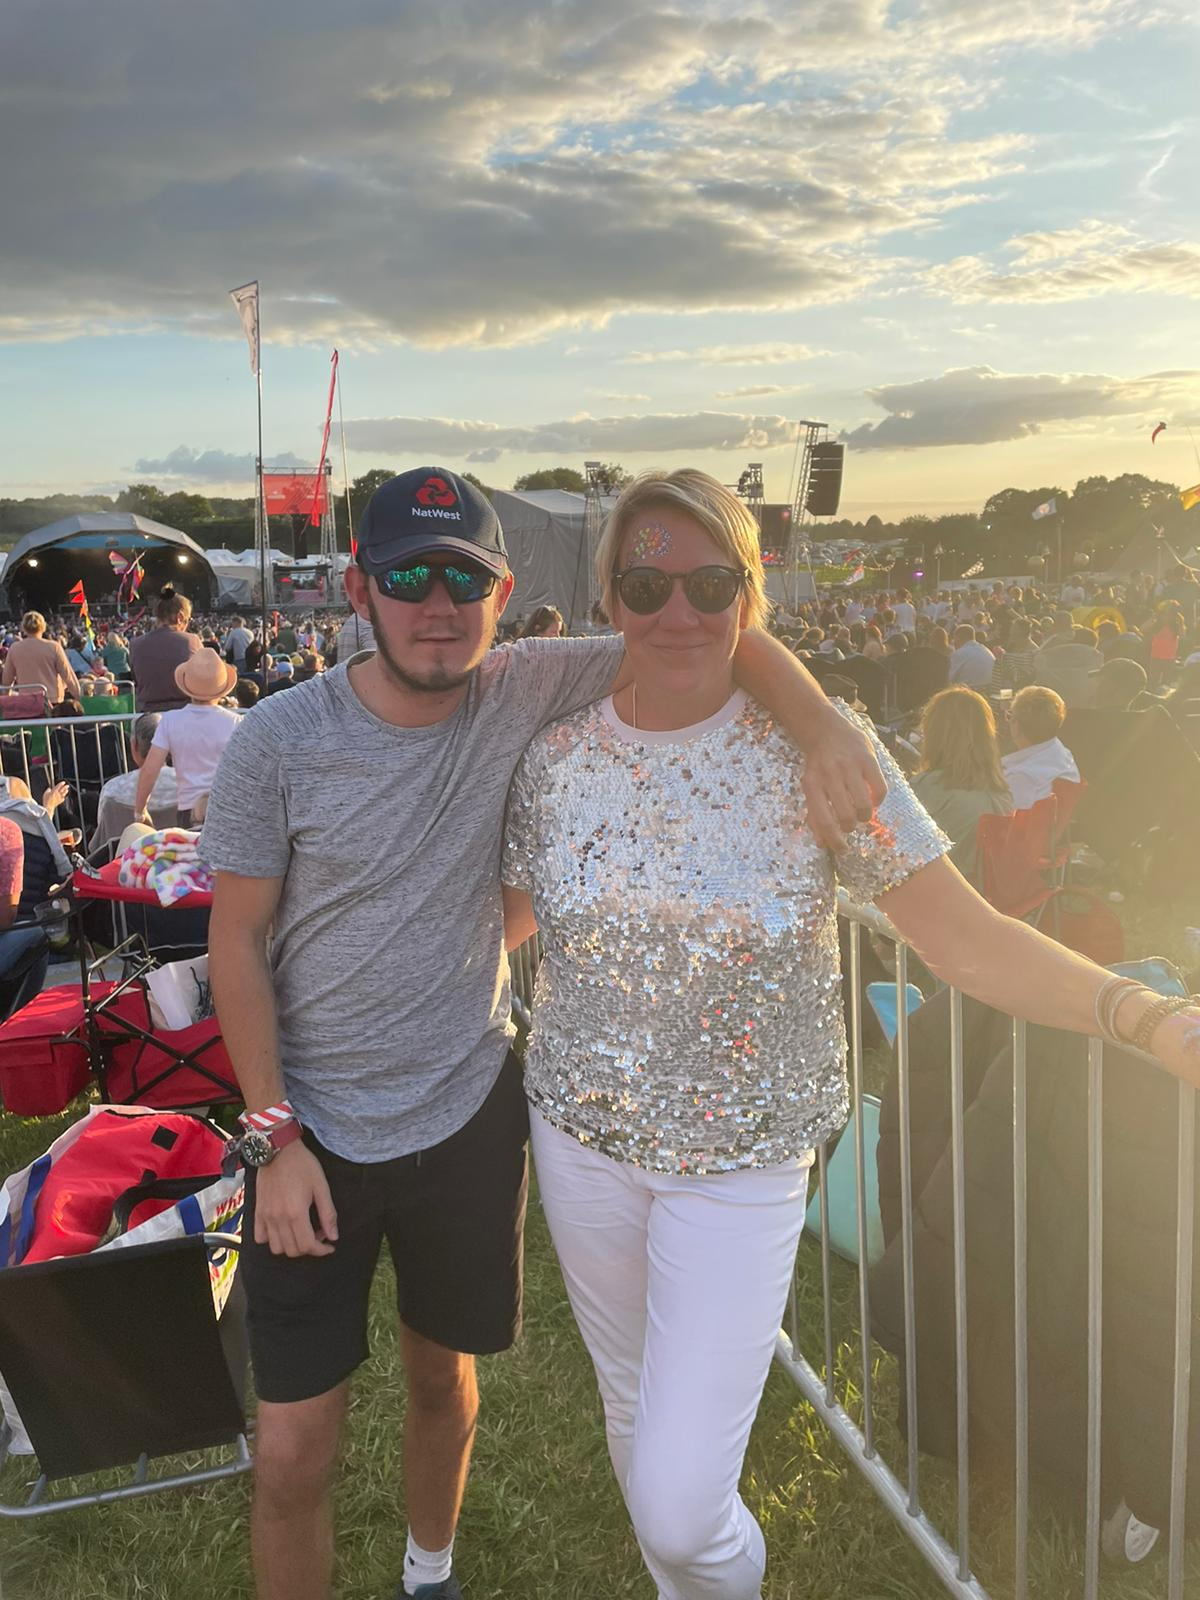 Jacob stood with his mum Louise Potter at a festival. There are lots of people behind them on a blue but partially cloudy day with the sun setting in the background.